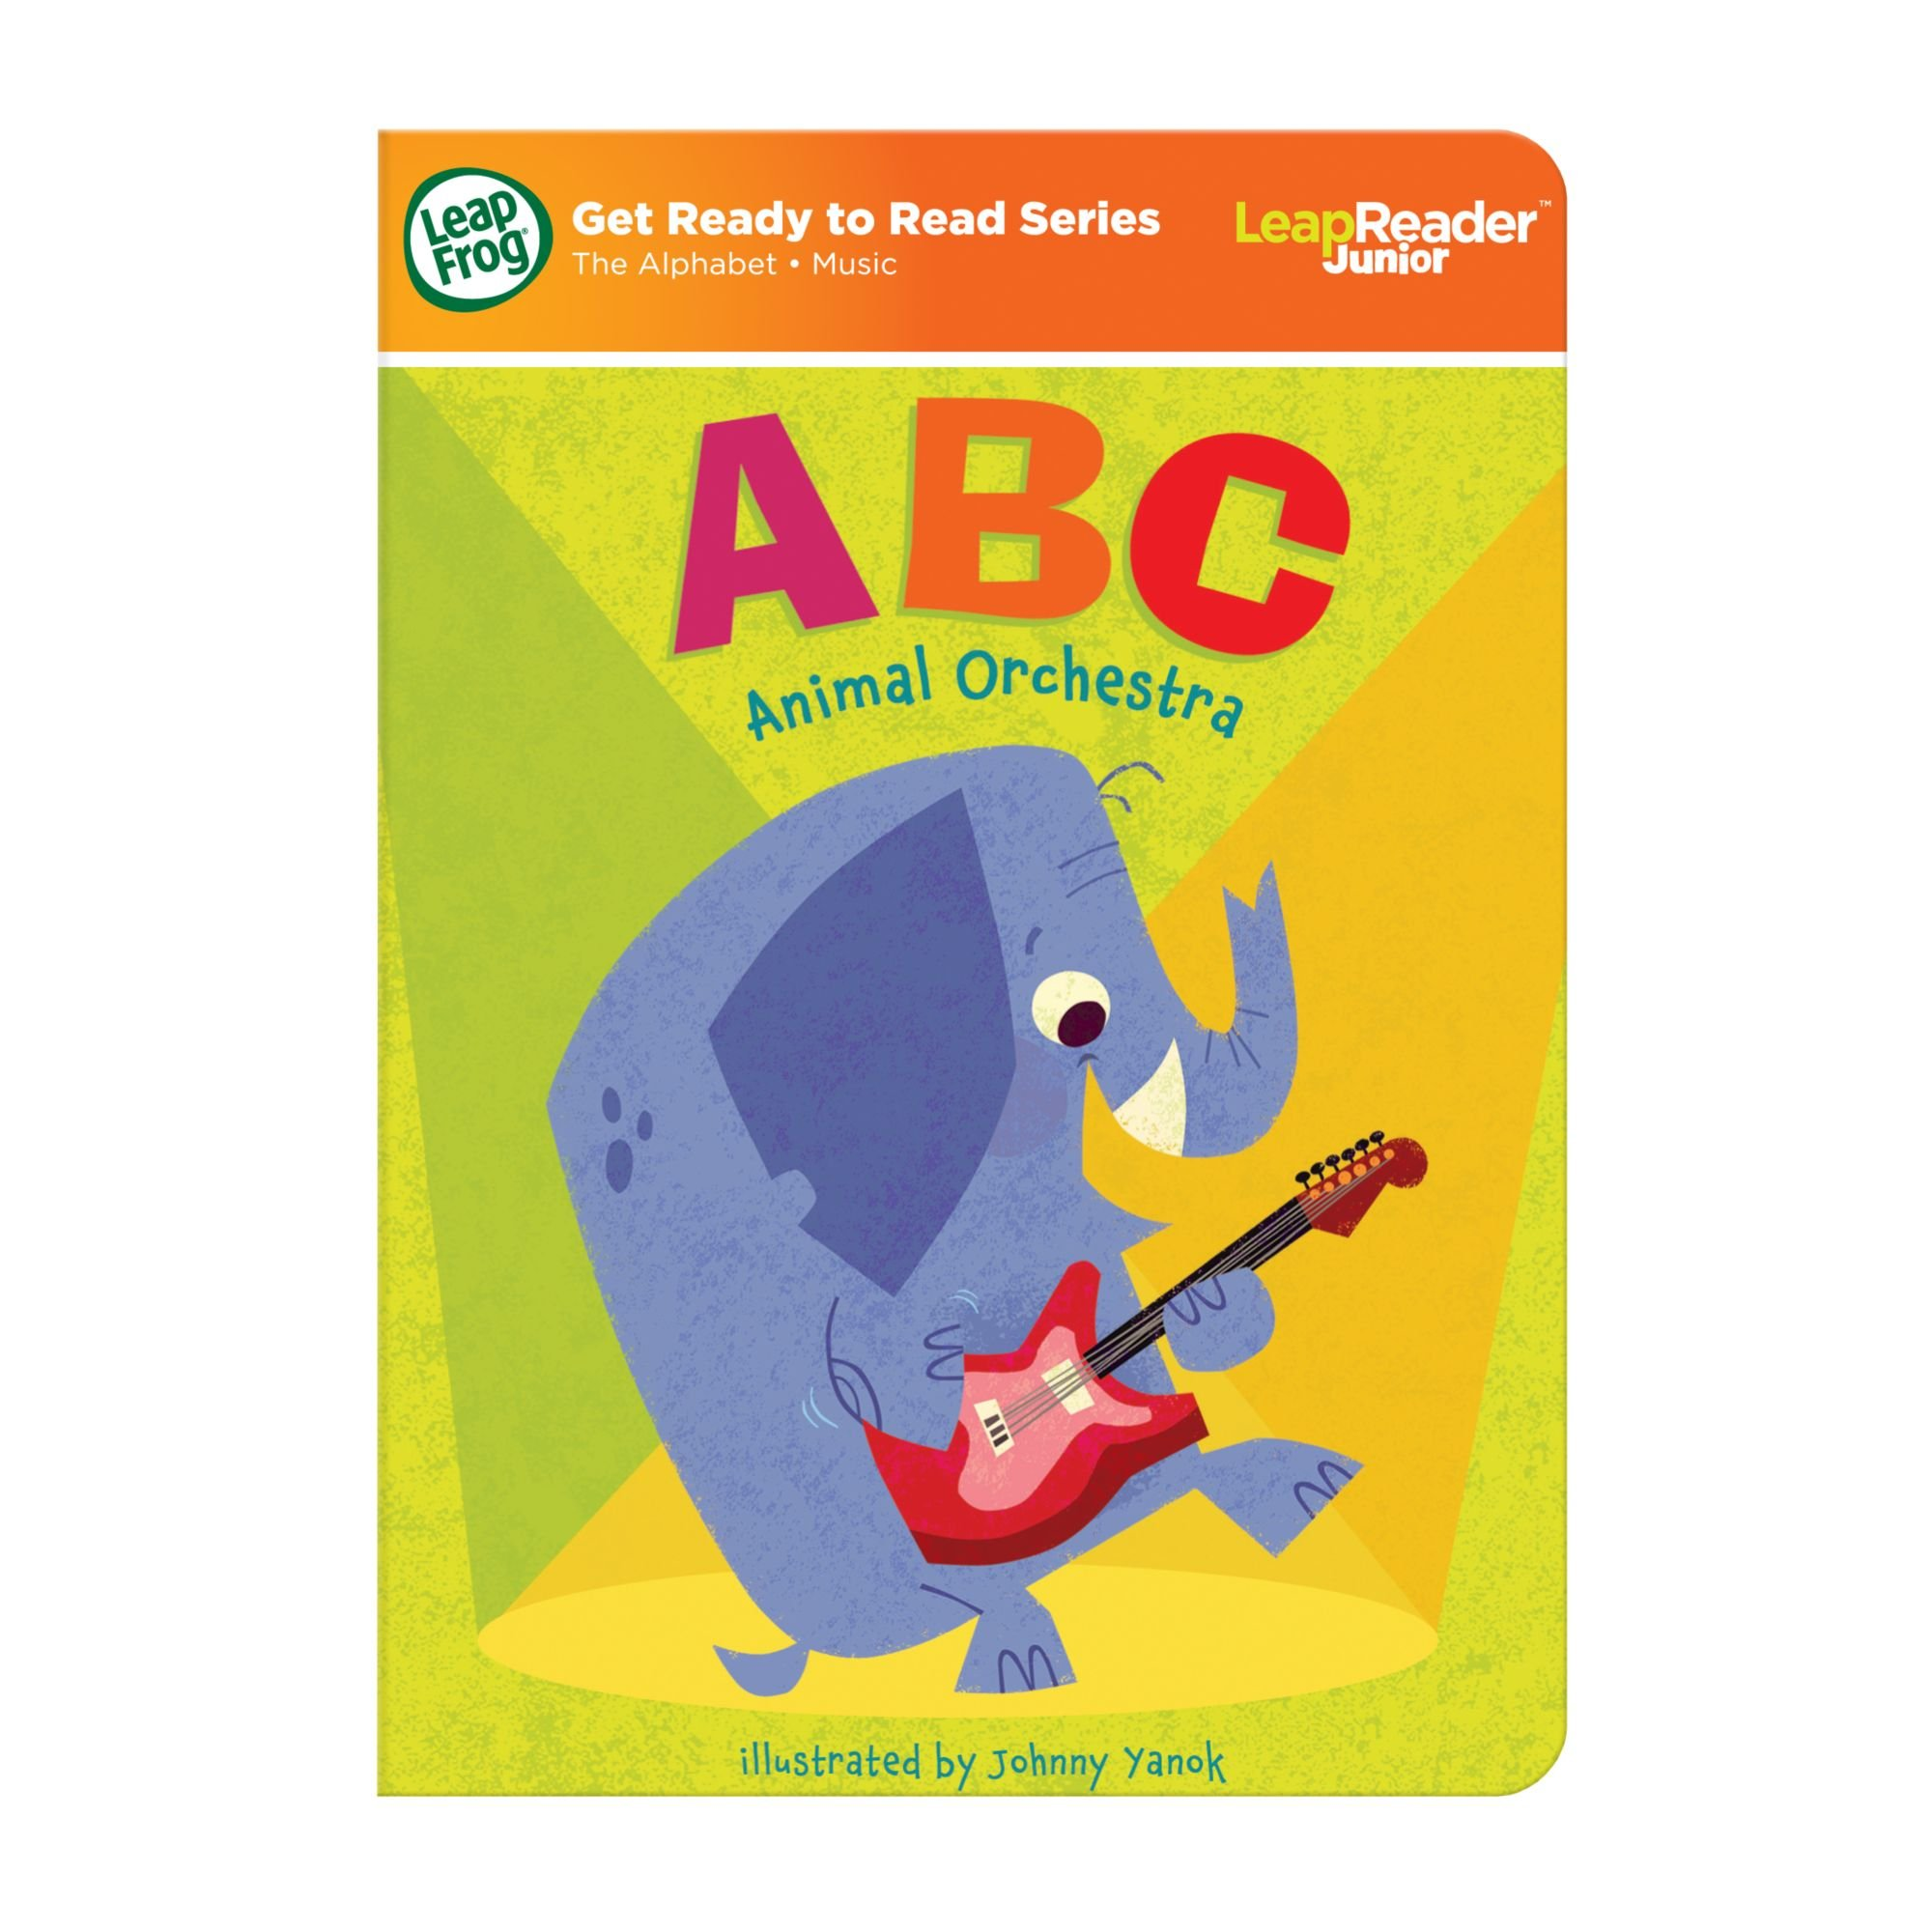 LeapFrog LeapReader Junior Book: ABC Animal Orchestra (works with Tag) by LeapFrog (Image #7)